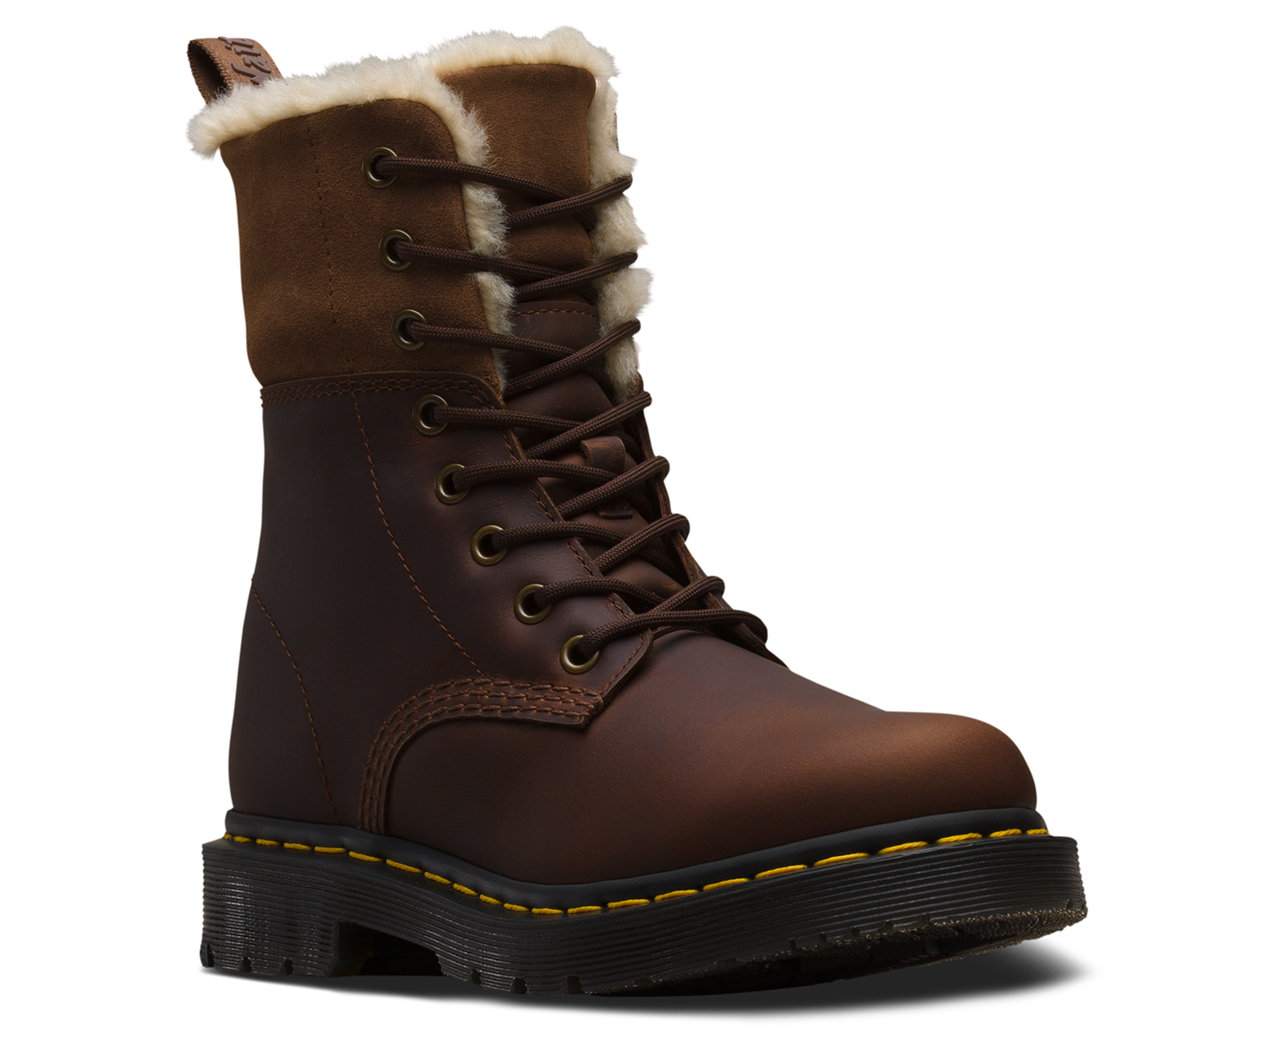 WINTERGRIPDM's Bootsamp; 1460 DM'S KOLBERT Wintergrip ShoesDr OkXiuPZT